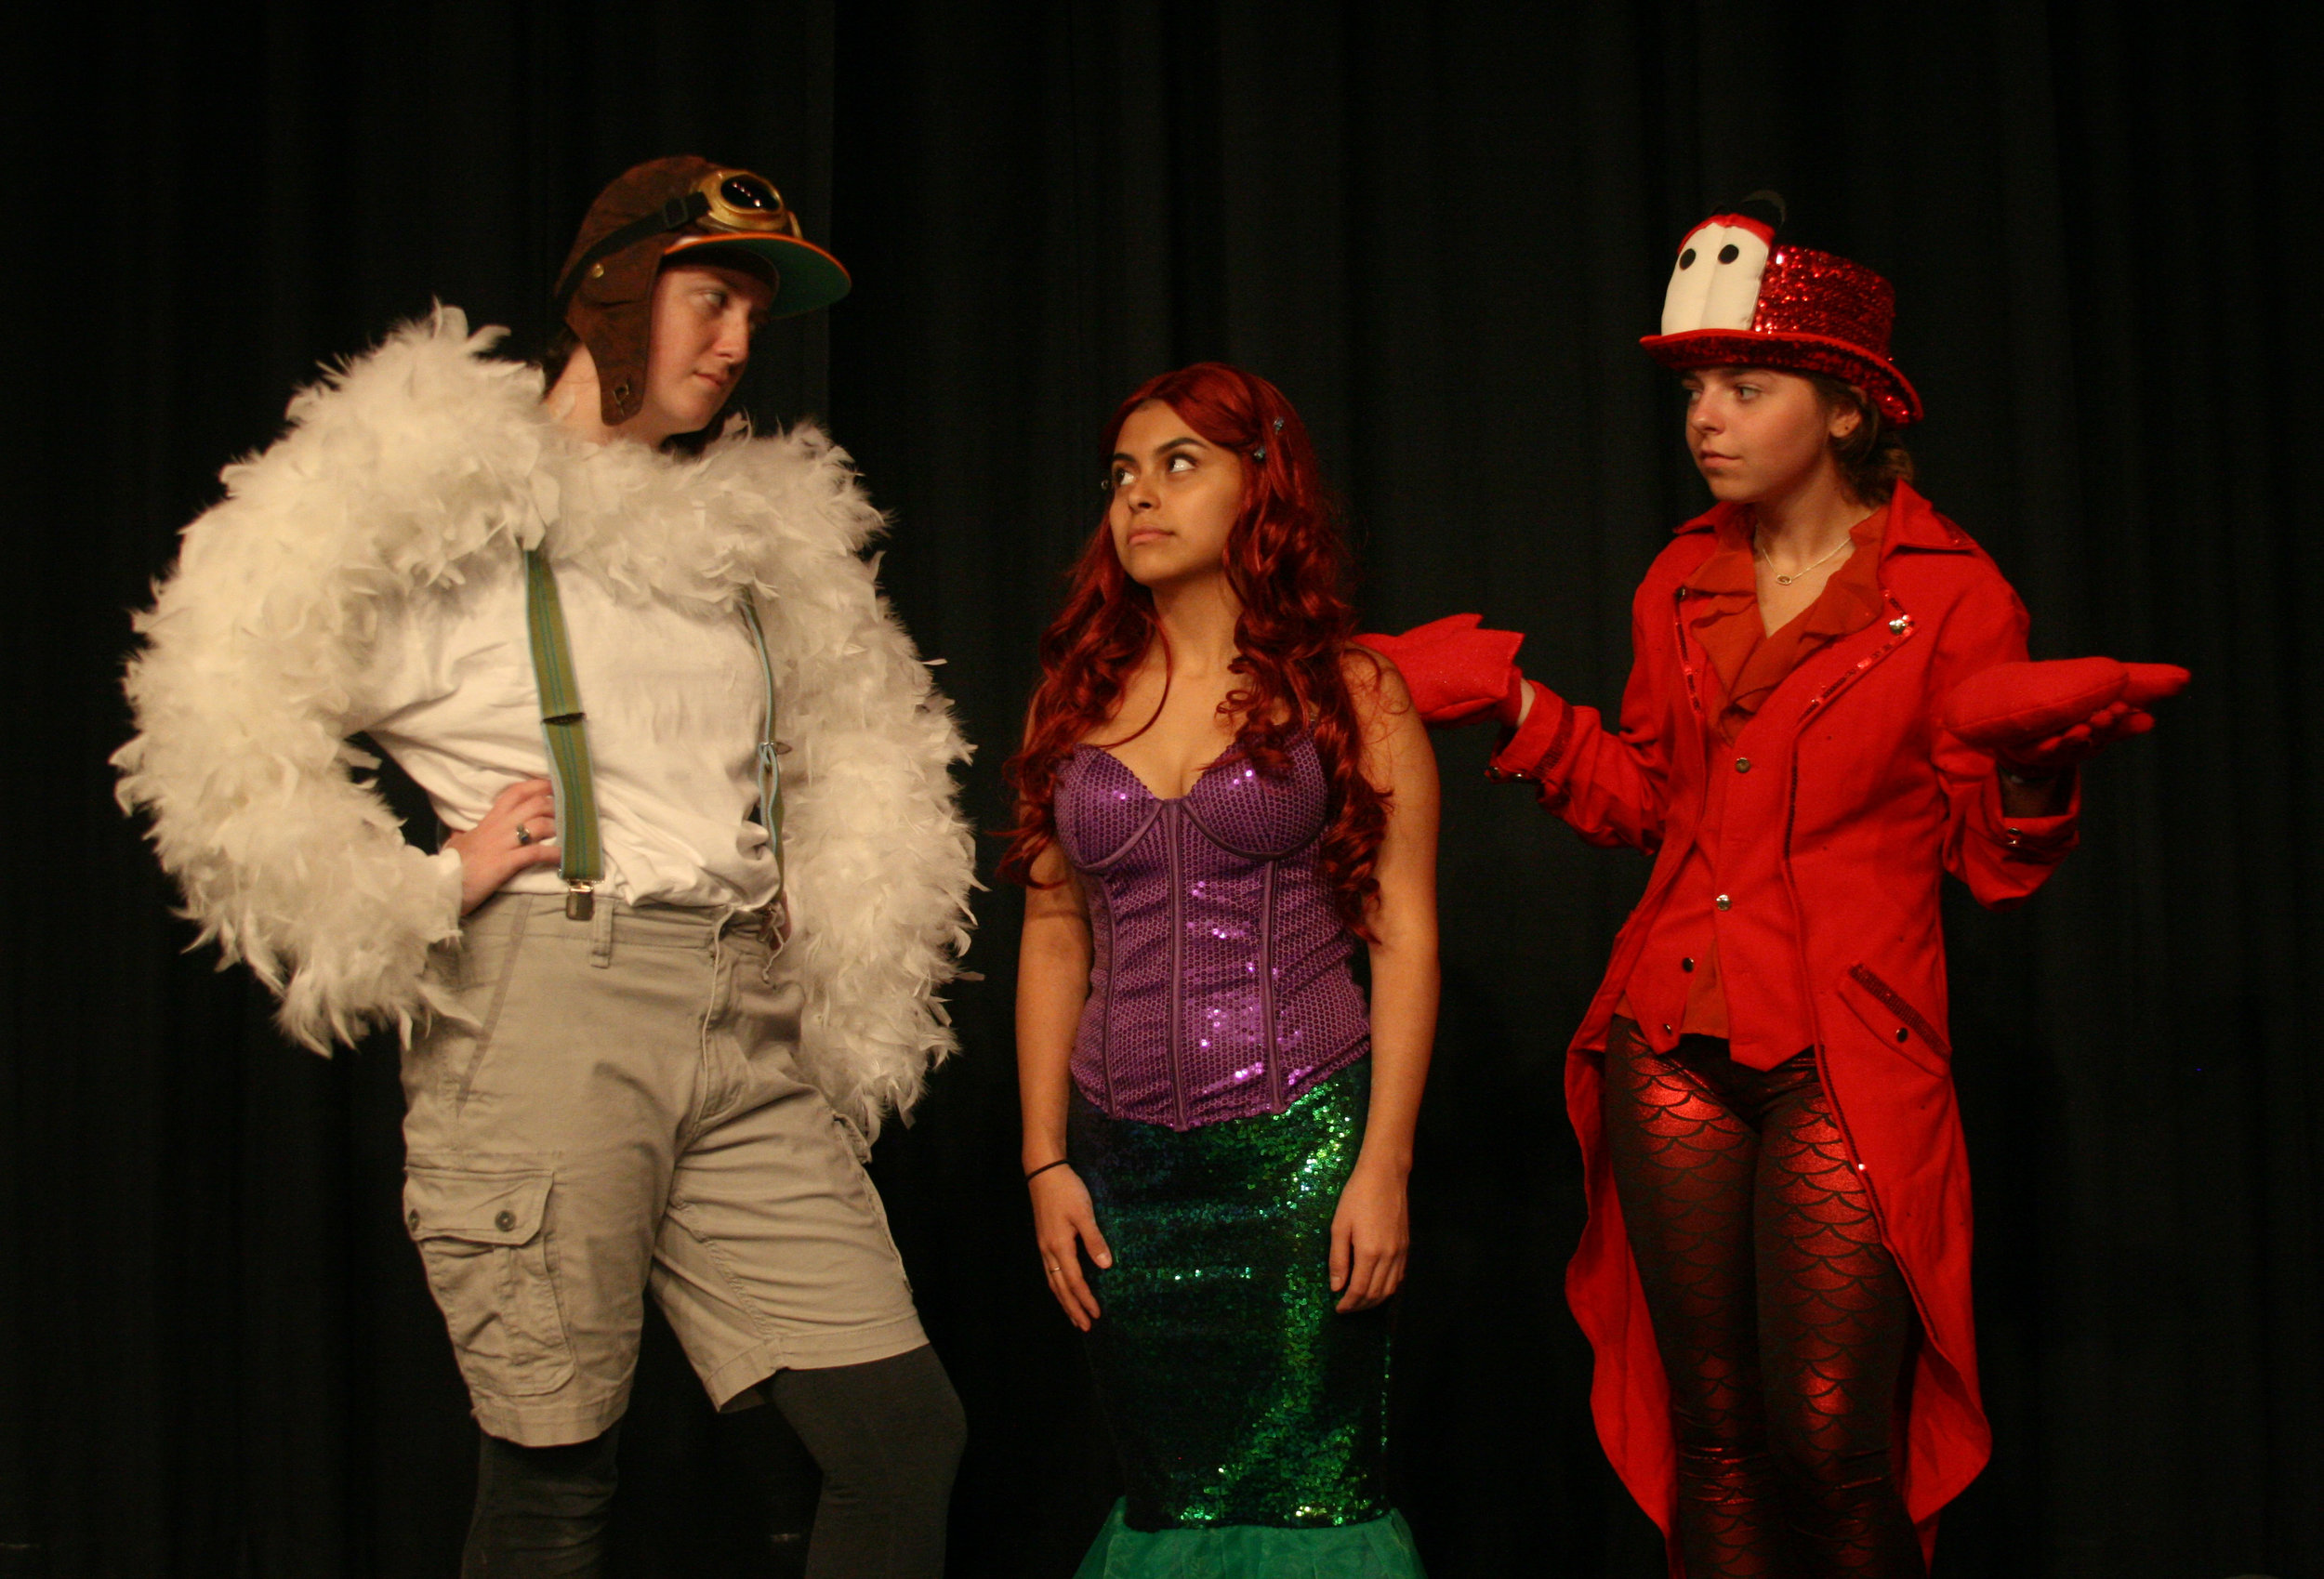 Scuttle the seagull (Jennifer Henderson) and Sebastian the crab (Lindley Andrew) try to persuade Ariel (Jennifer Trejo Benitez) that life is better under the sea.